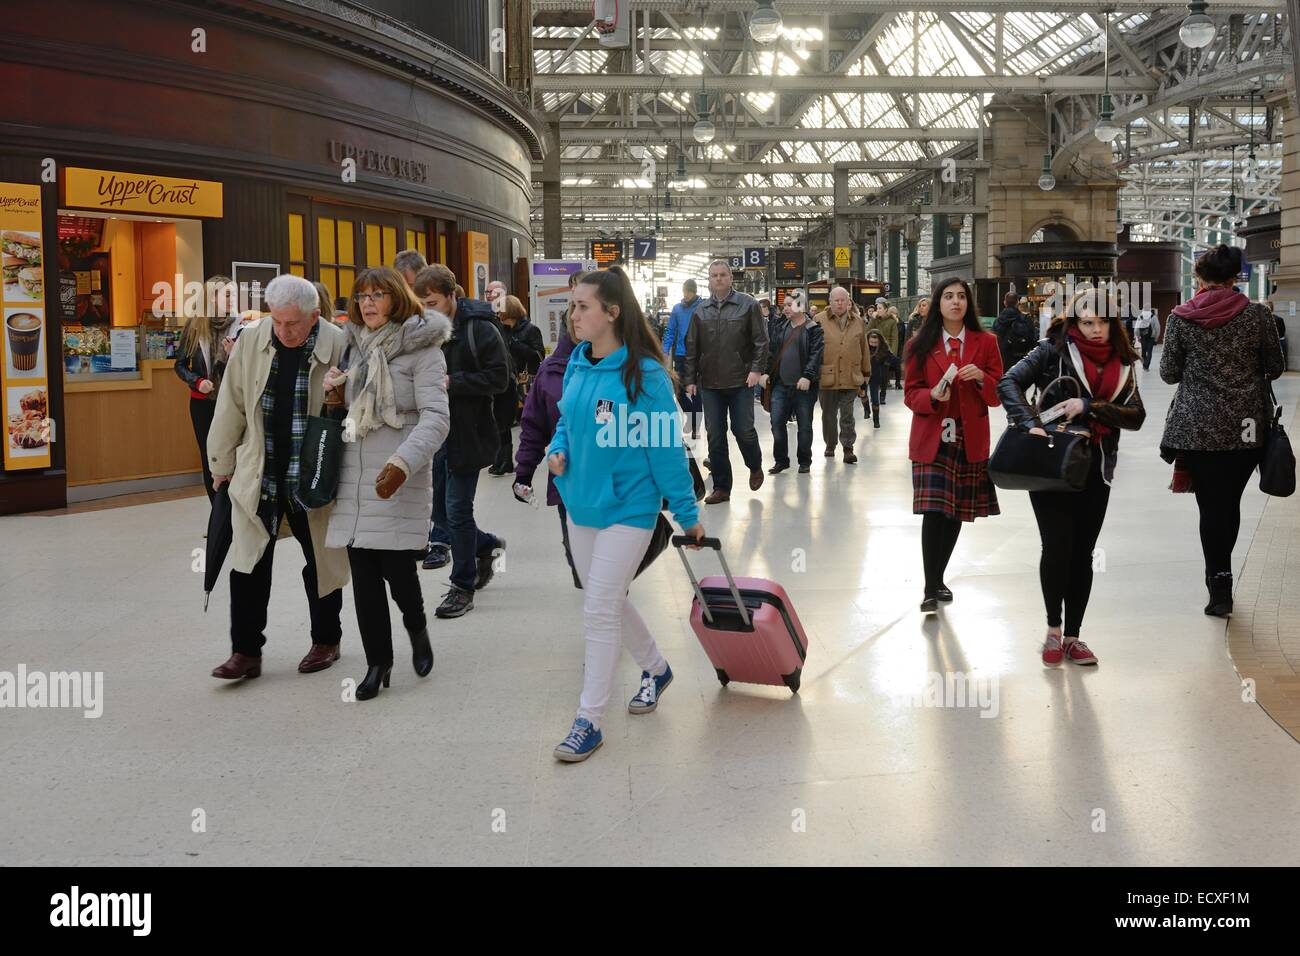 A busy concourse in Glasgow Central Station, Scotland - Stock Image